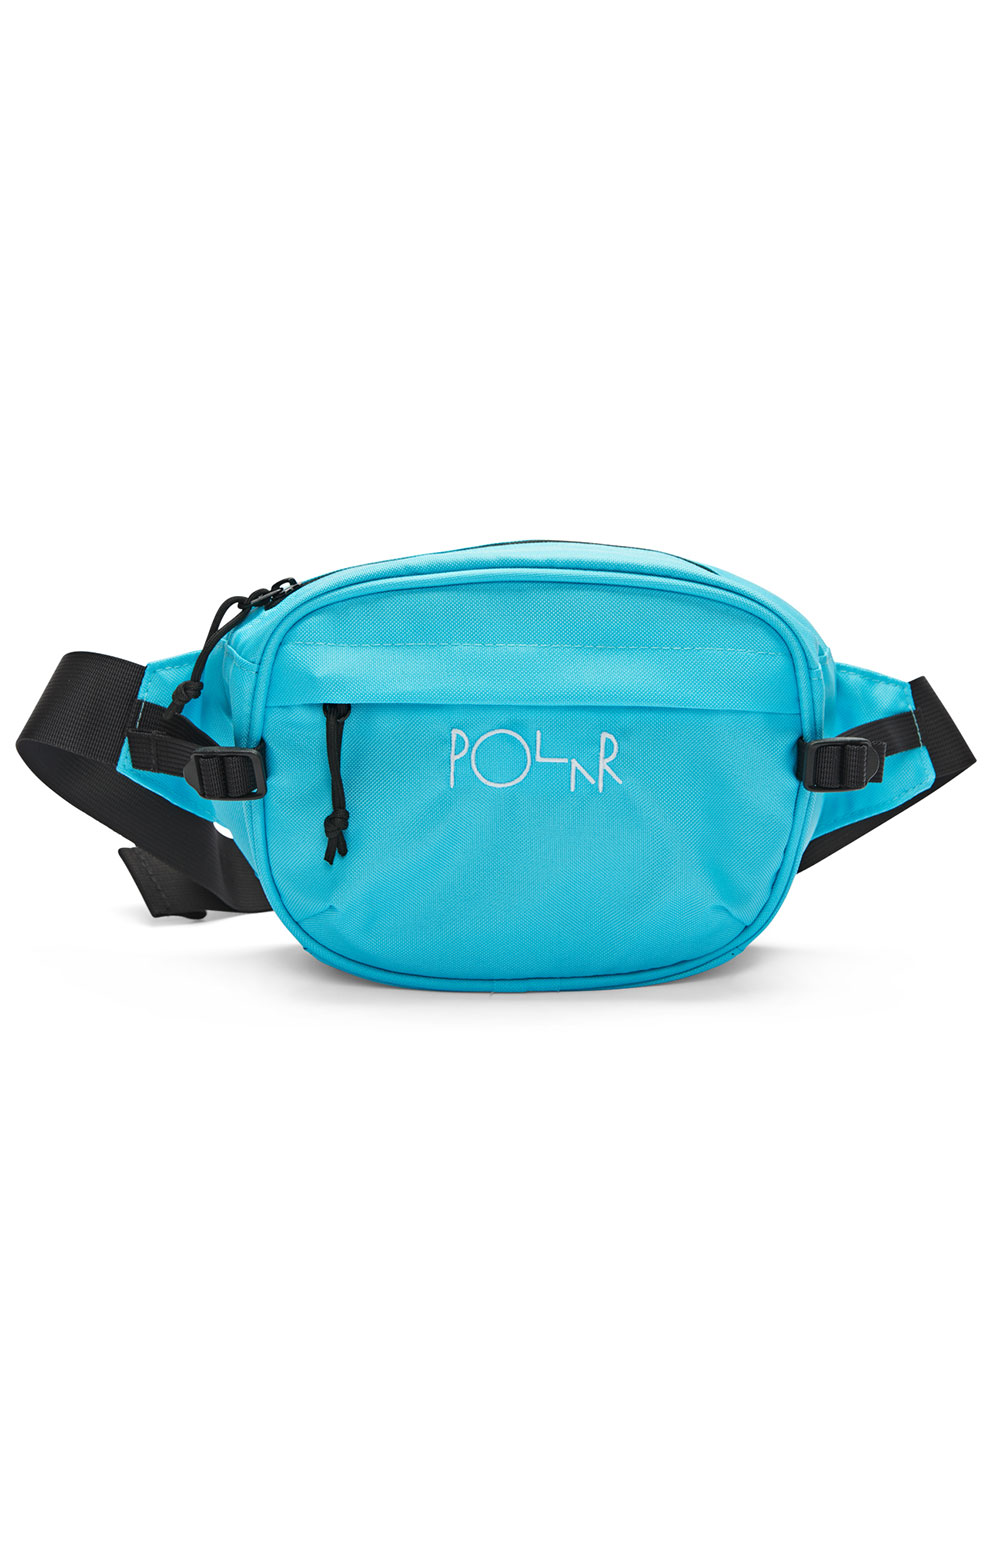 Cordura Hip Bag - Blue